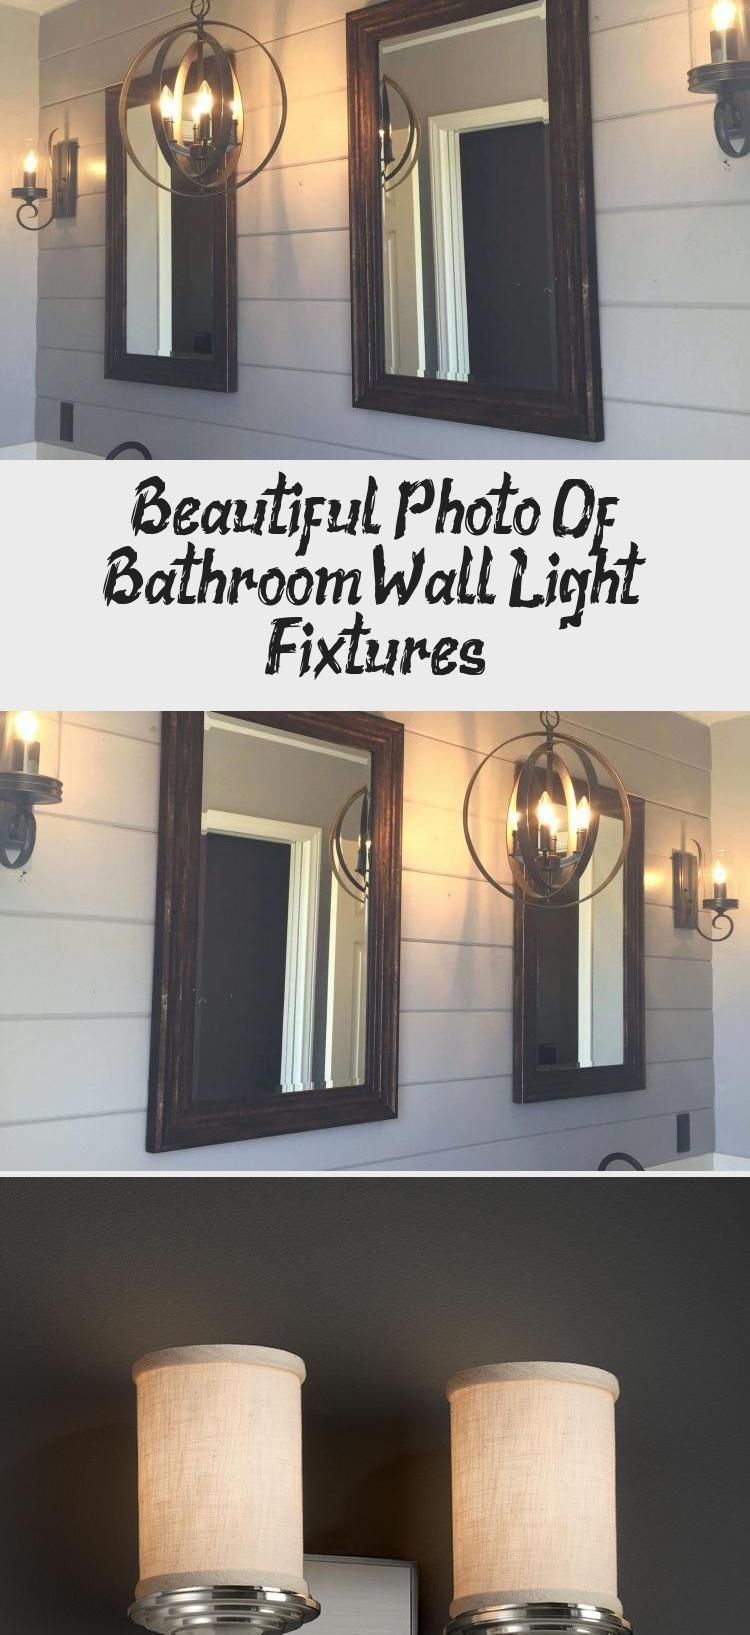 Photo of Beautiful Photo Of Bathroom Wall Light Fixtures – Decorations